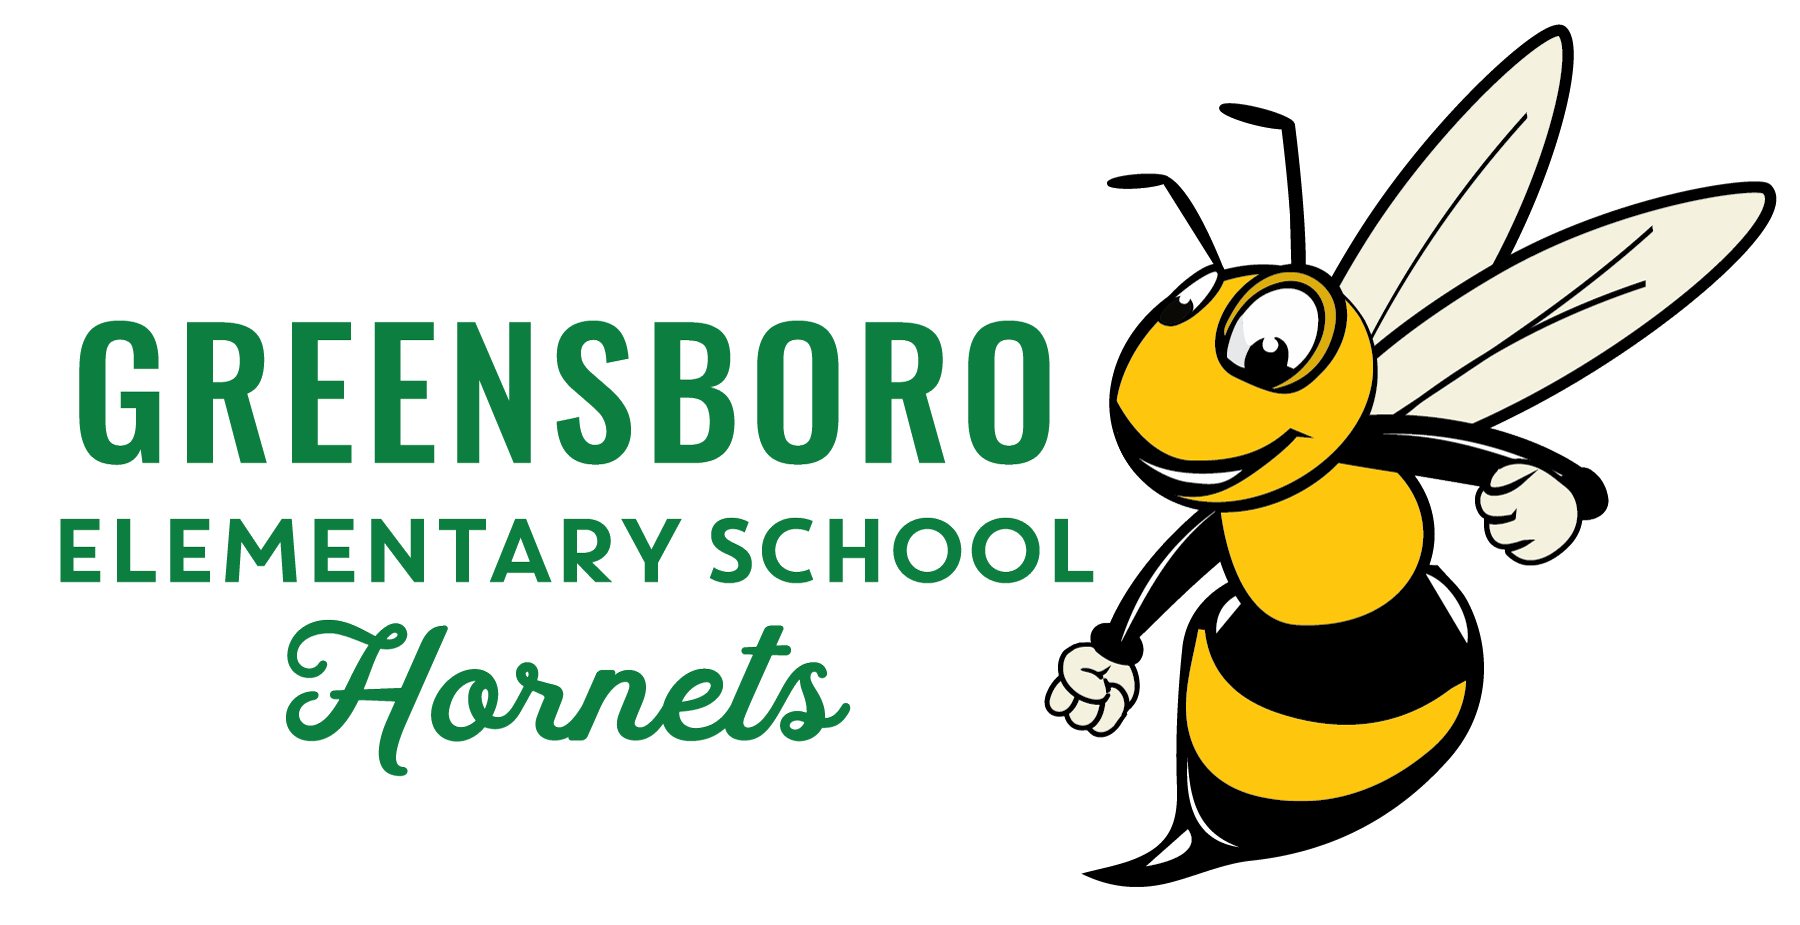 Greensboro Elementary School